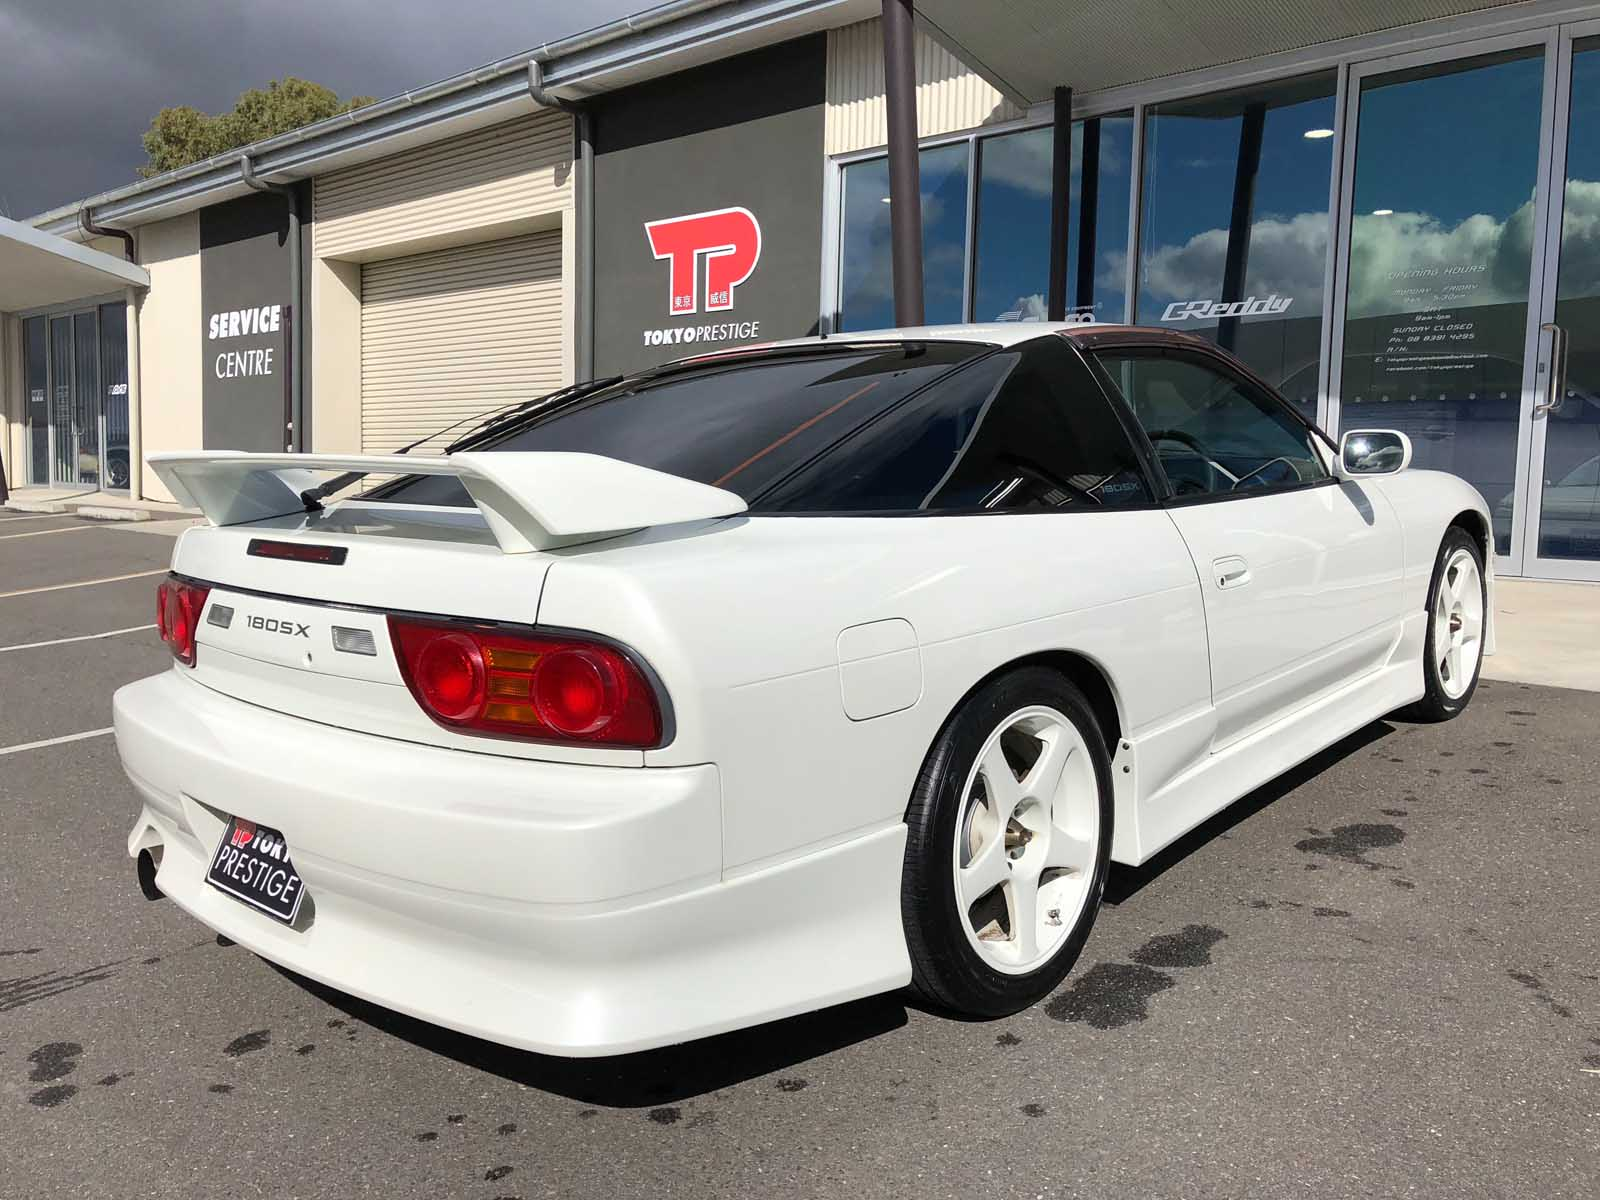 Nissan 180sx 1996 manual manual coupe array 1997 nissan 180sx s13 type x hatchback 2dr man 5sp 2 0t tokyo prestige fandeluxe Image collections